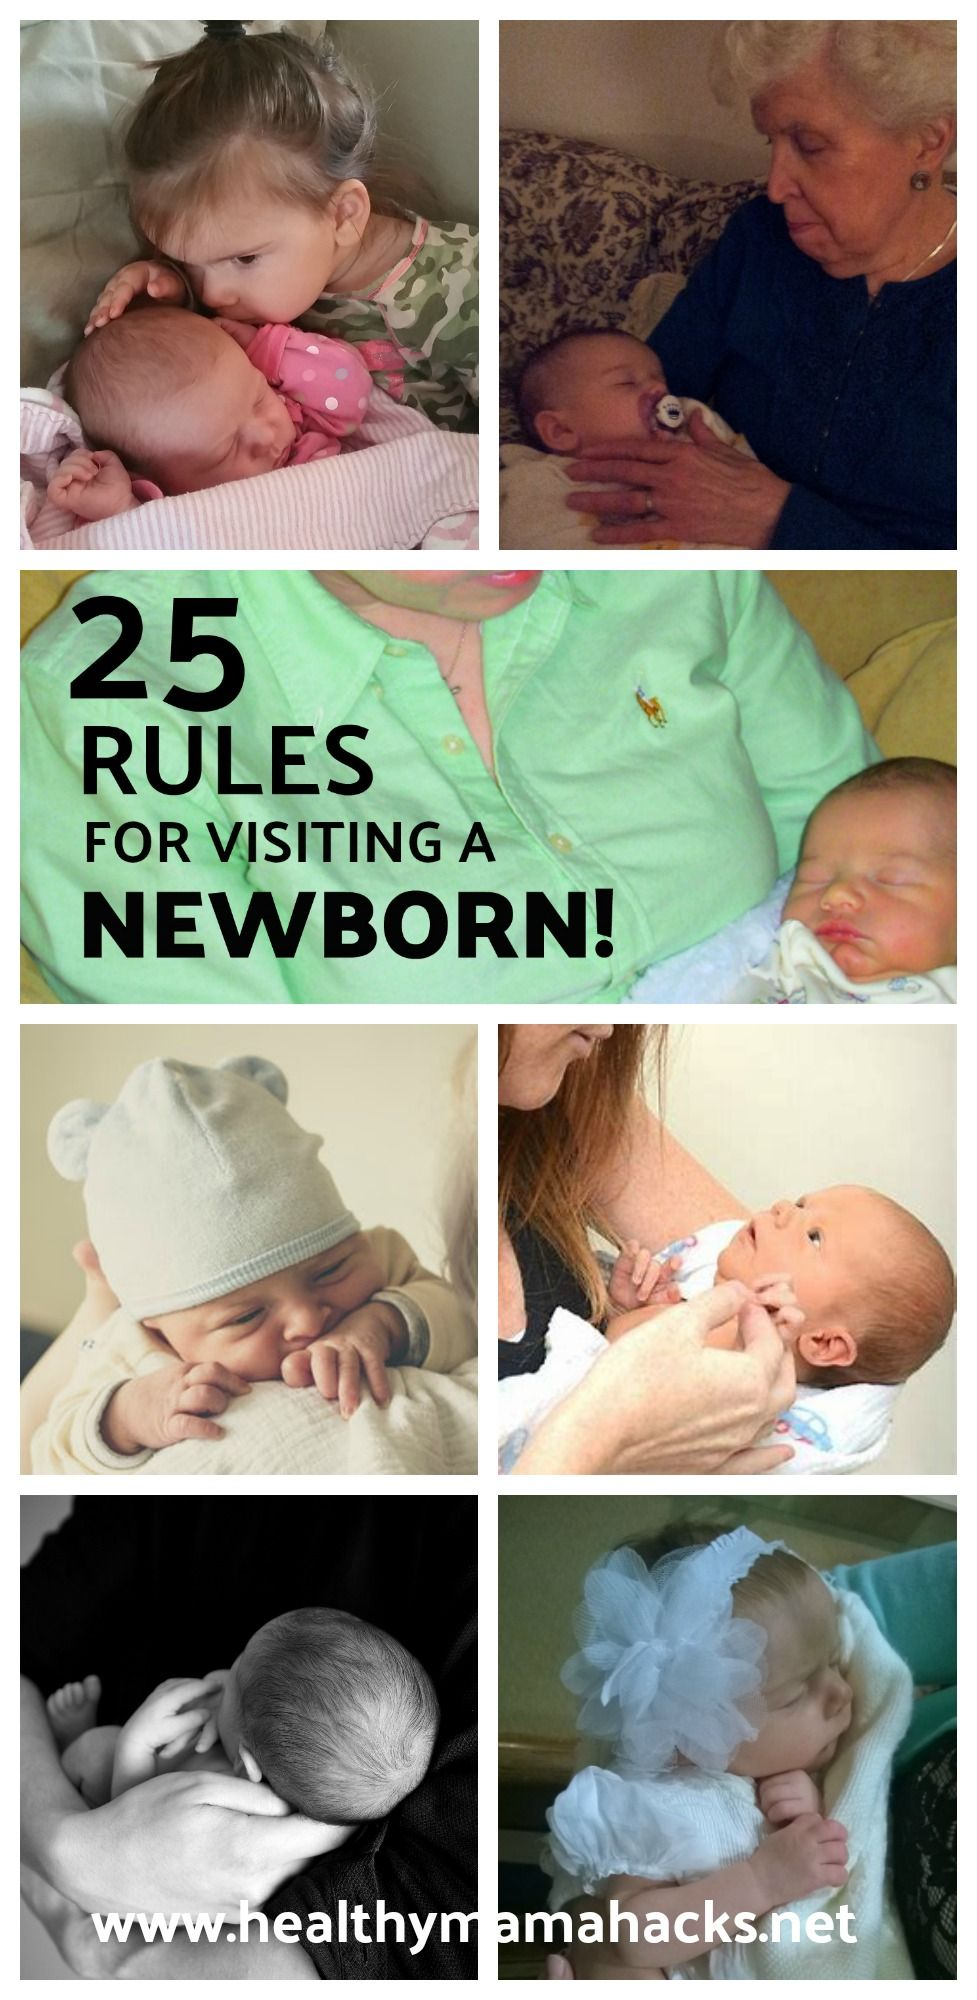 25 Rules for Visiting a Newborn Newborn care, New baby